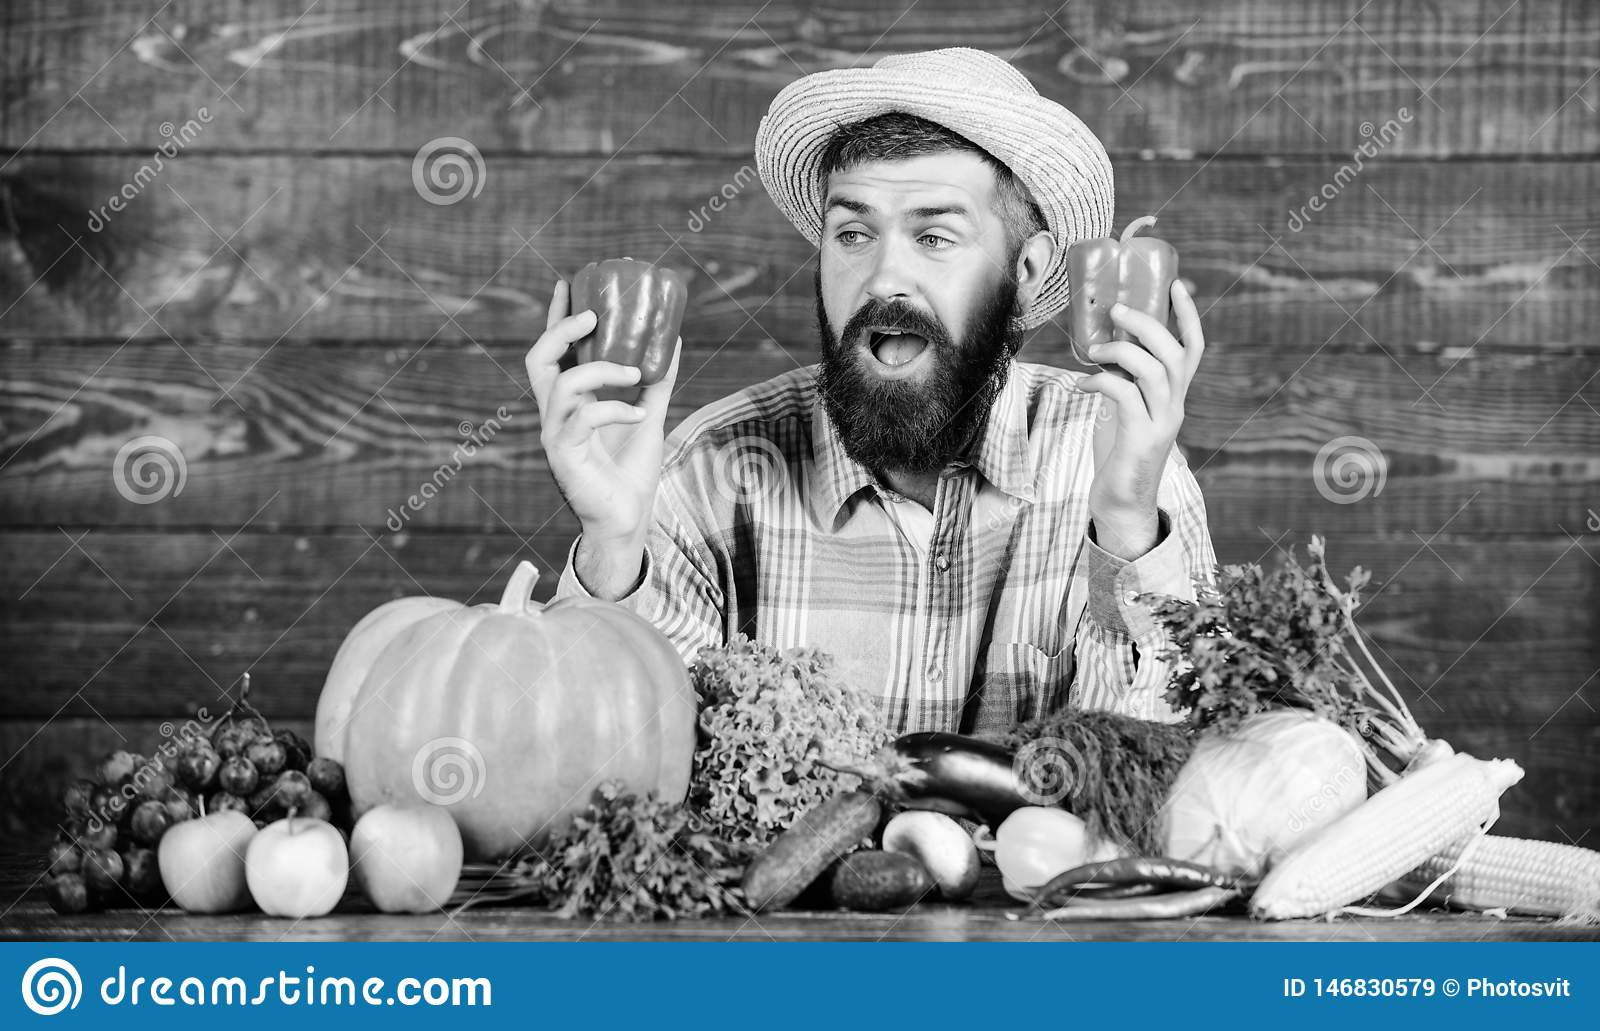 Only fresh and healthy food. bearded mature farmer. harvest festival. man chef with rich autumn crop. organic and